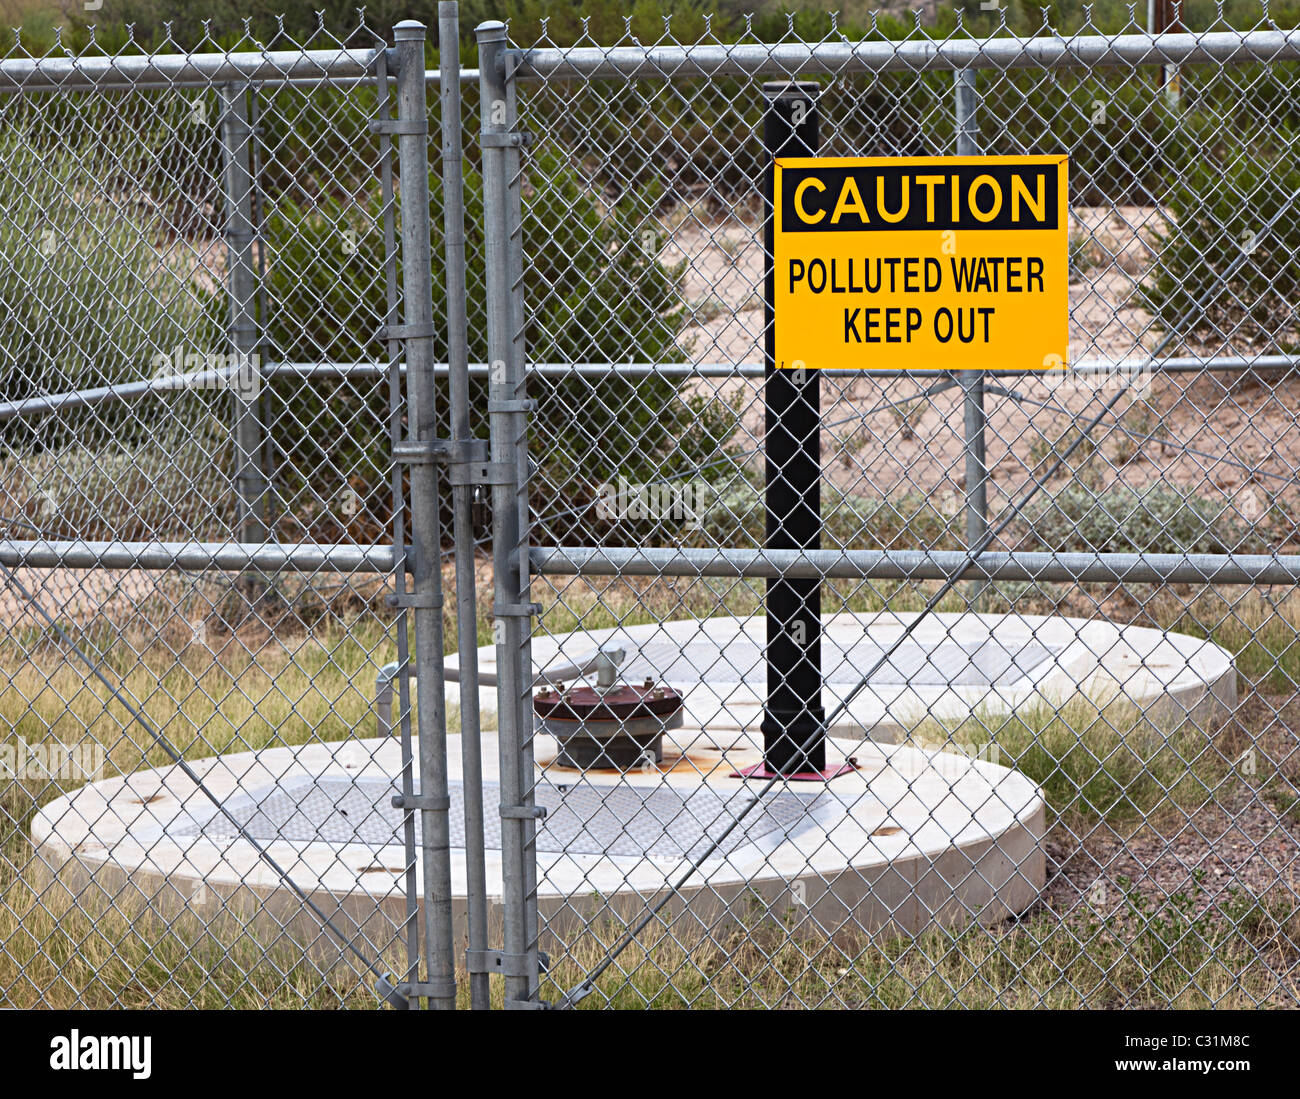 Caution polluted water sign on fence around water supply Big Bend National Park Texas USA - Stock Image